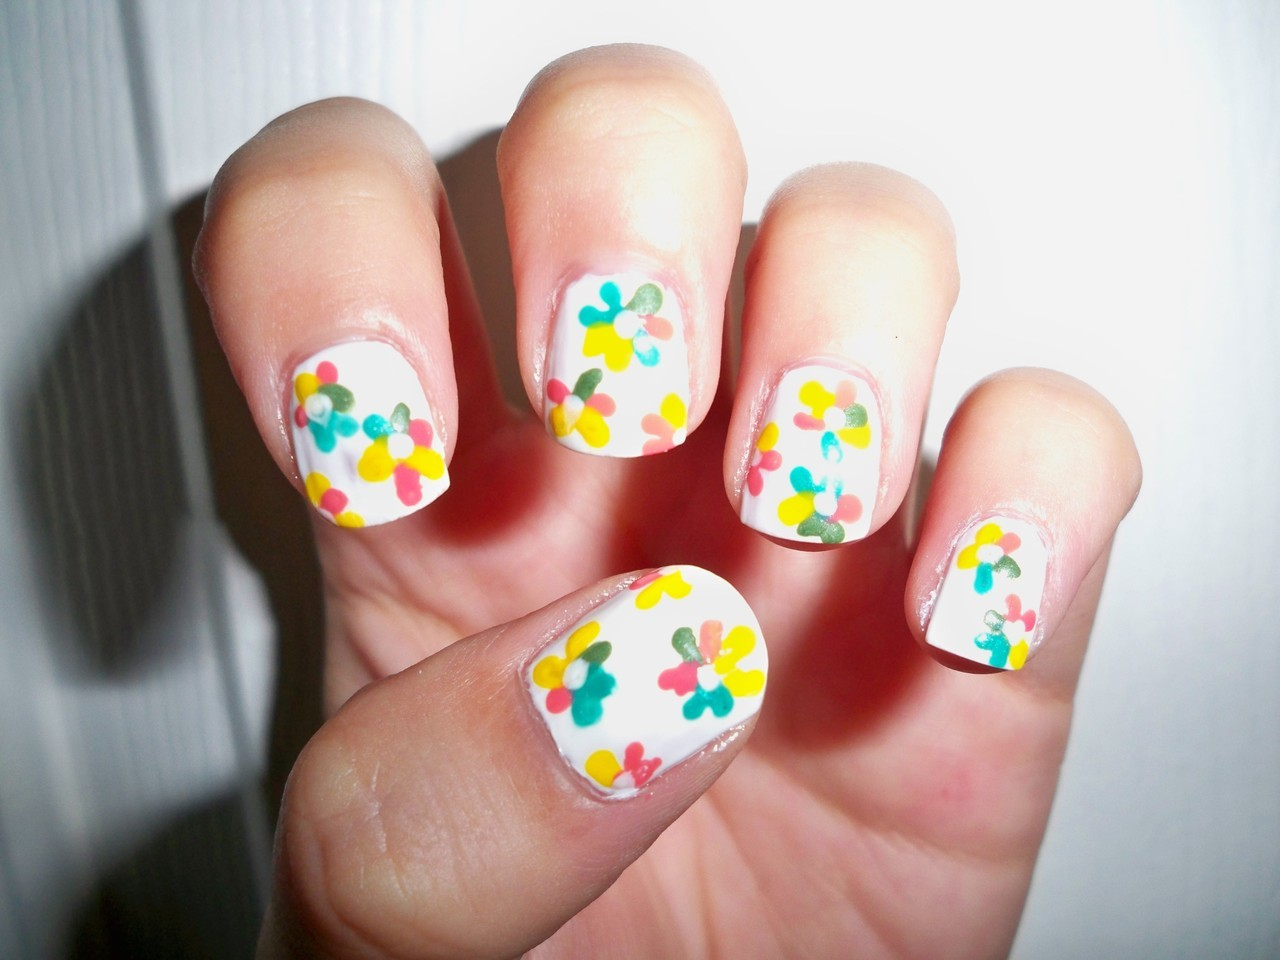 jennguyen:  Summer nails!